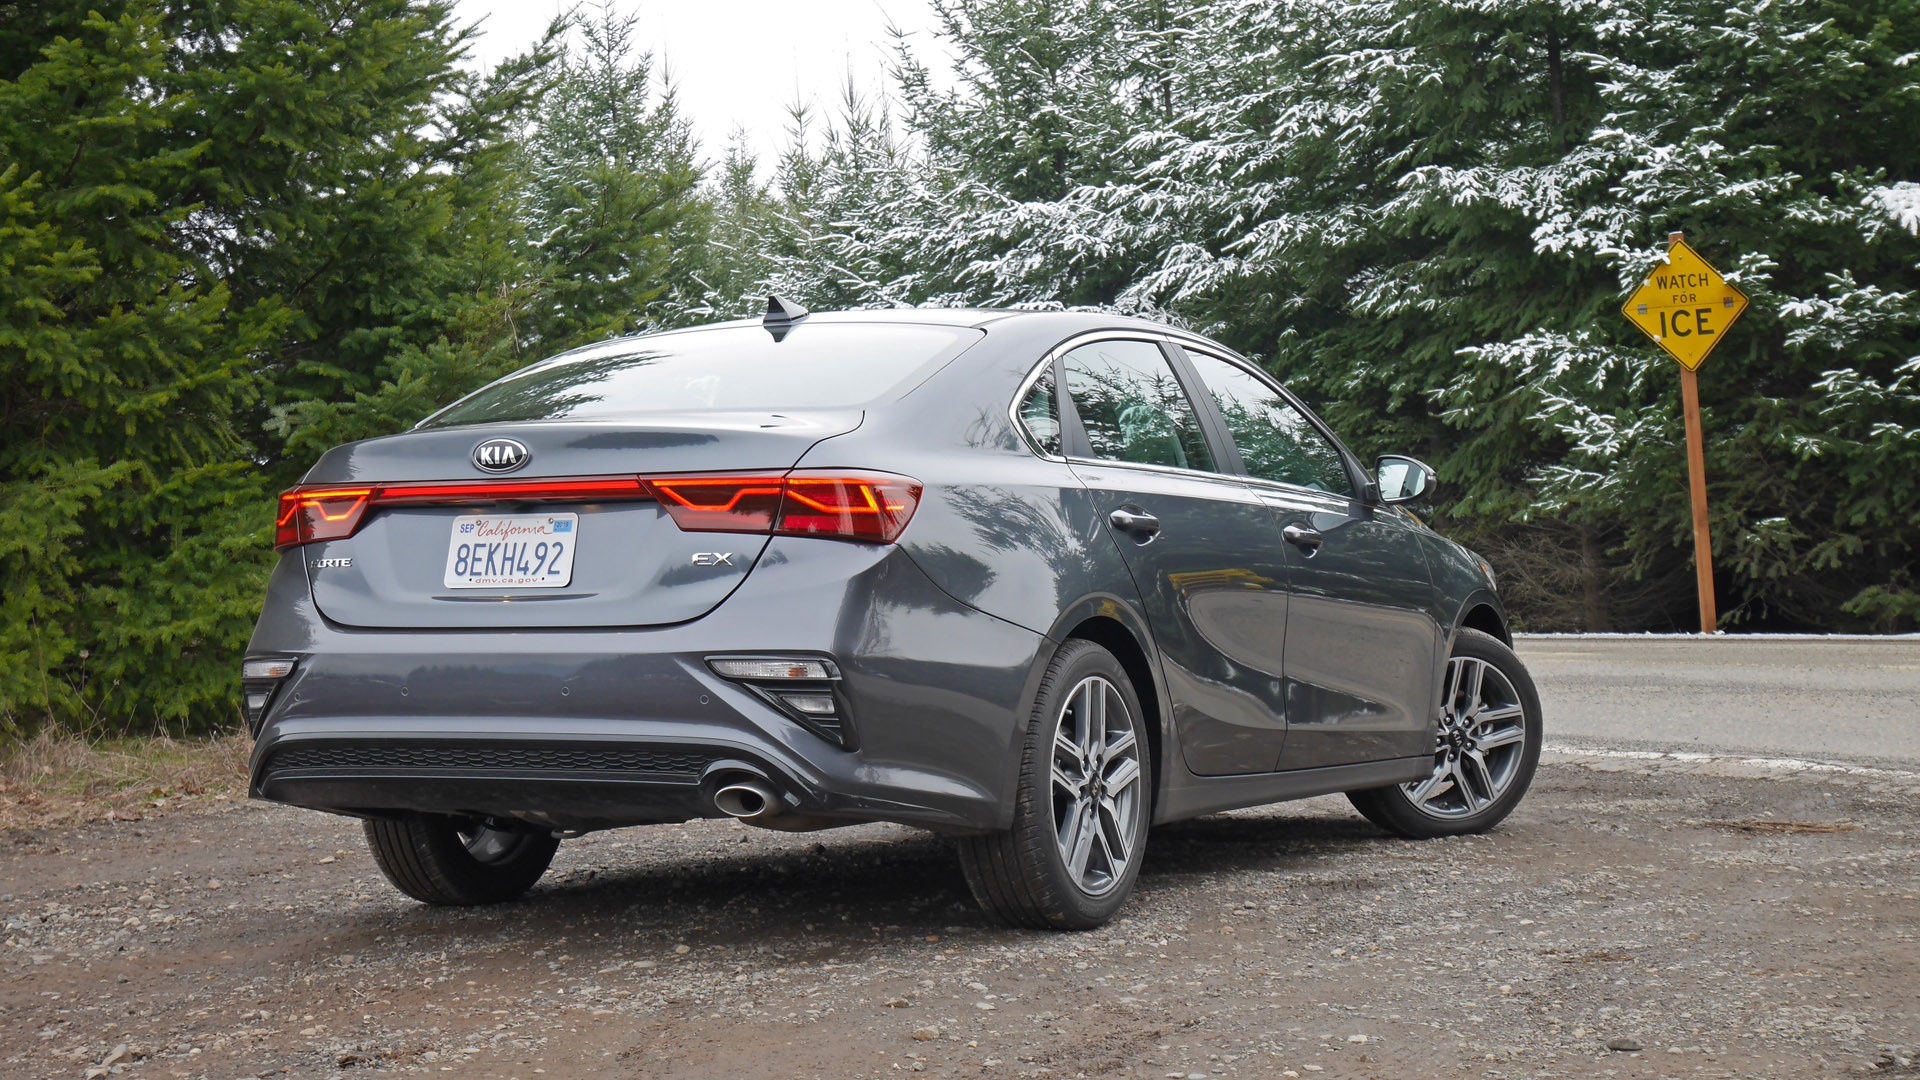 2019 Kia Forte Review Driving And Interior Impressions Of This Compact Sedan Autoblog